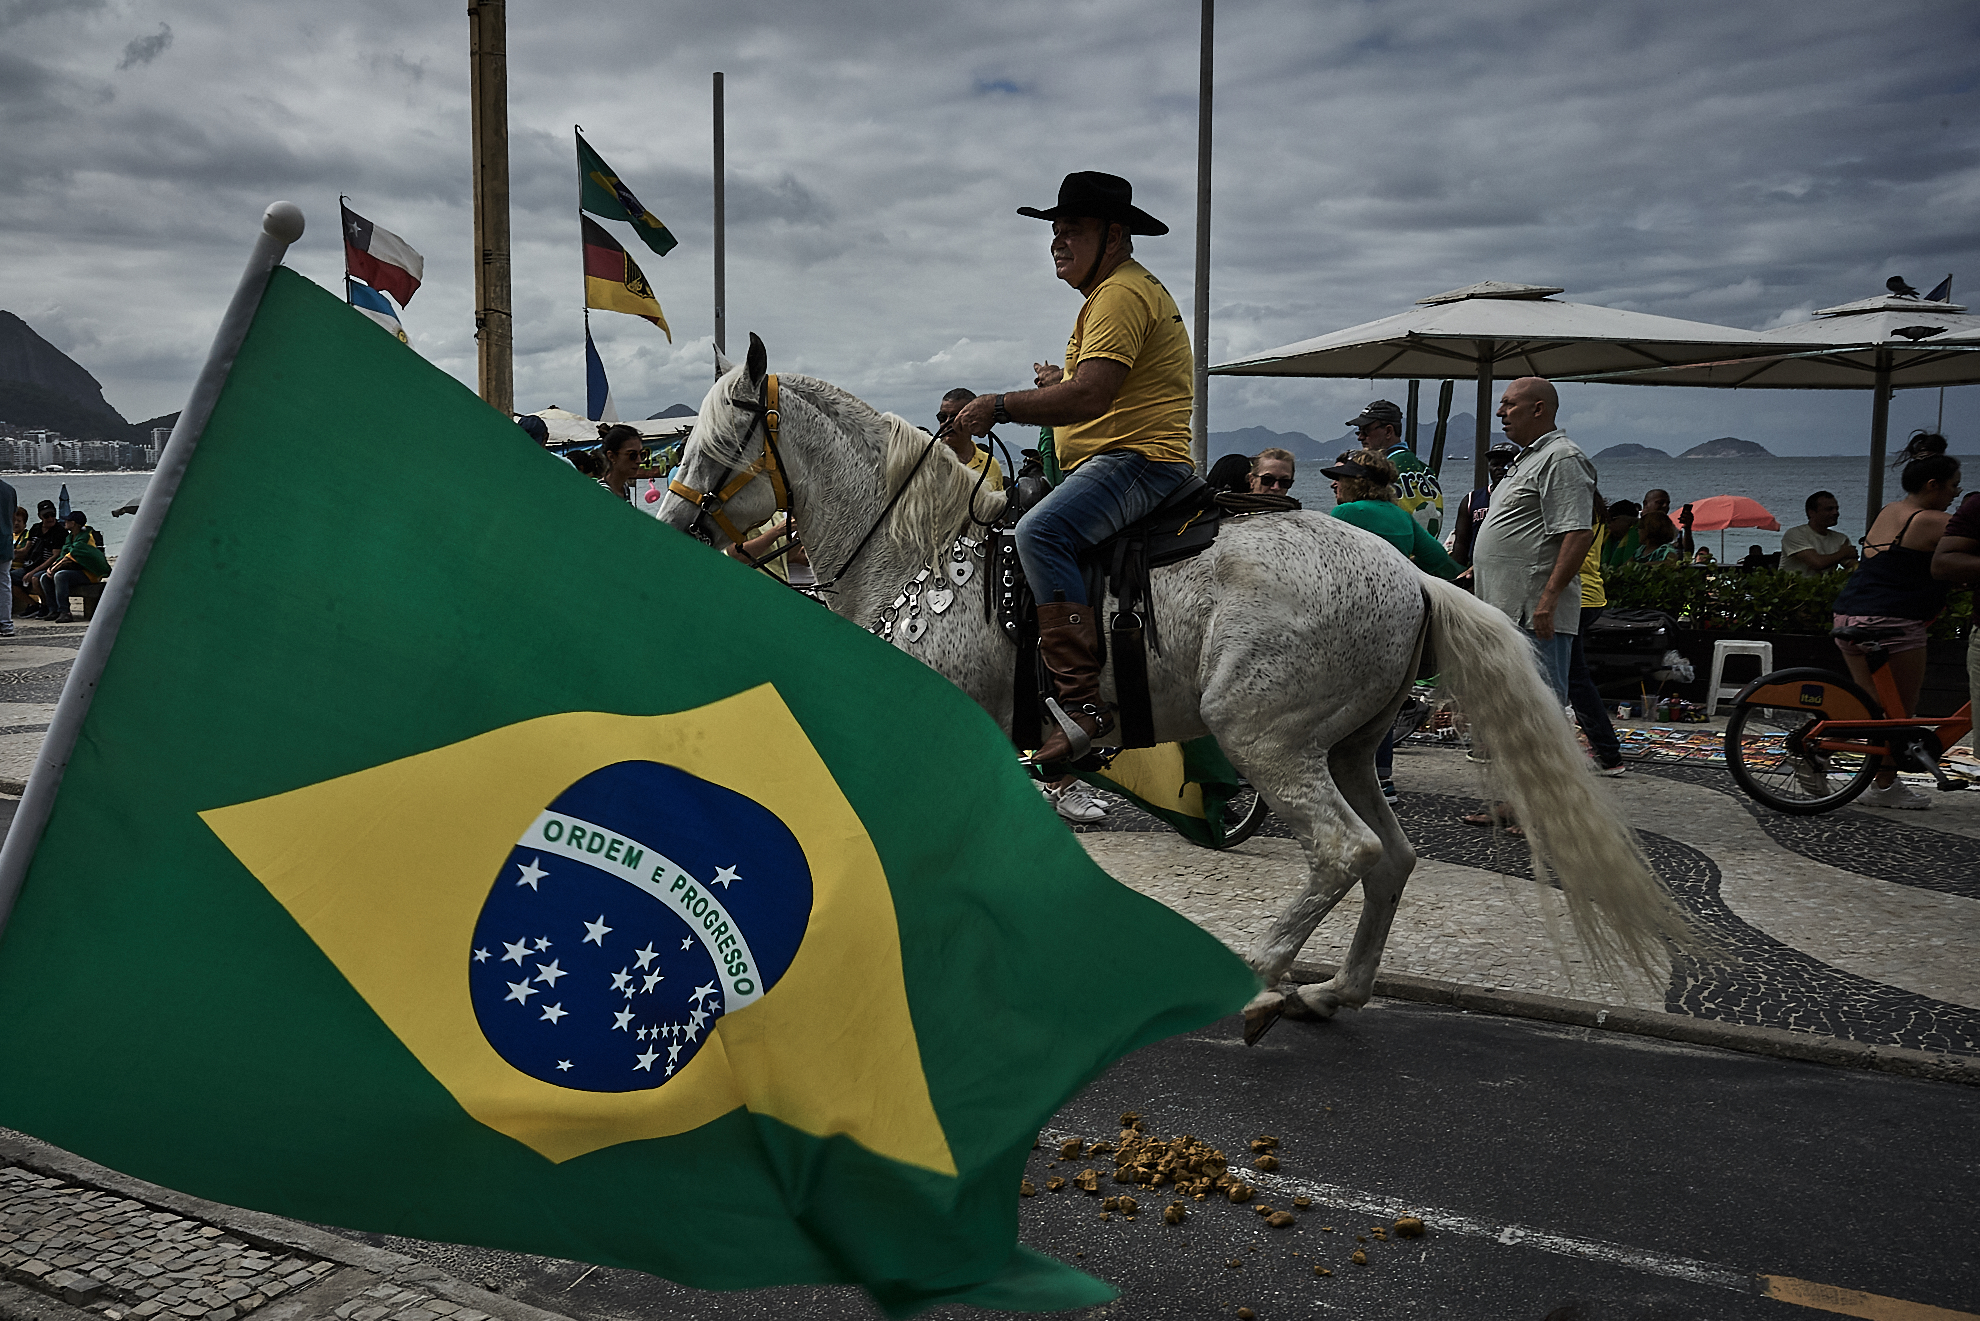 A demonstrator rides a horse on Copacabana beach during an act in support of Brazil's President Jair Bolsonaro (Photo: C.H. Gardiner)